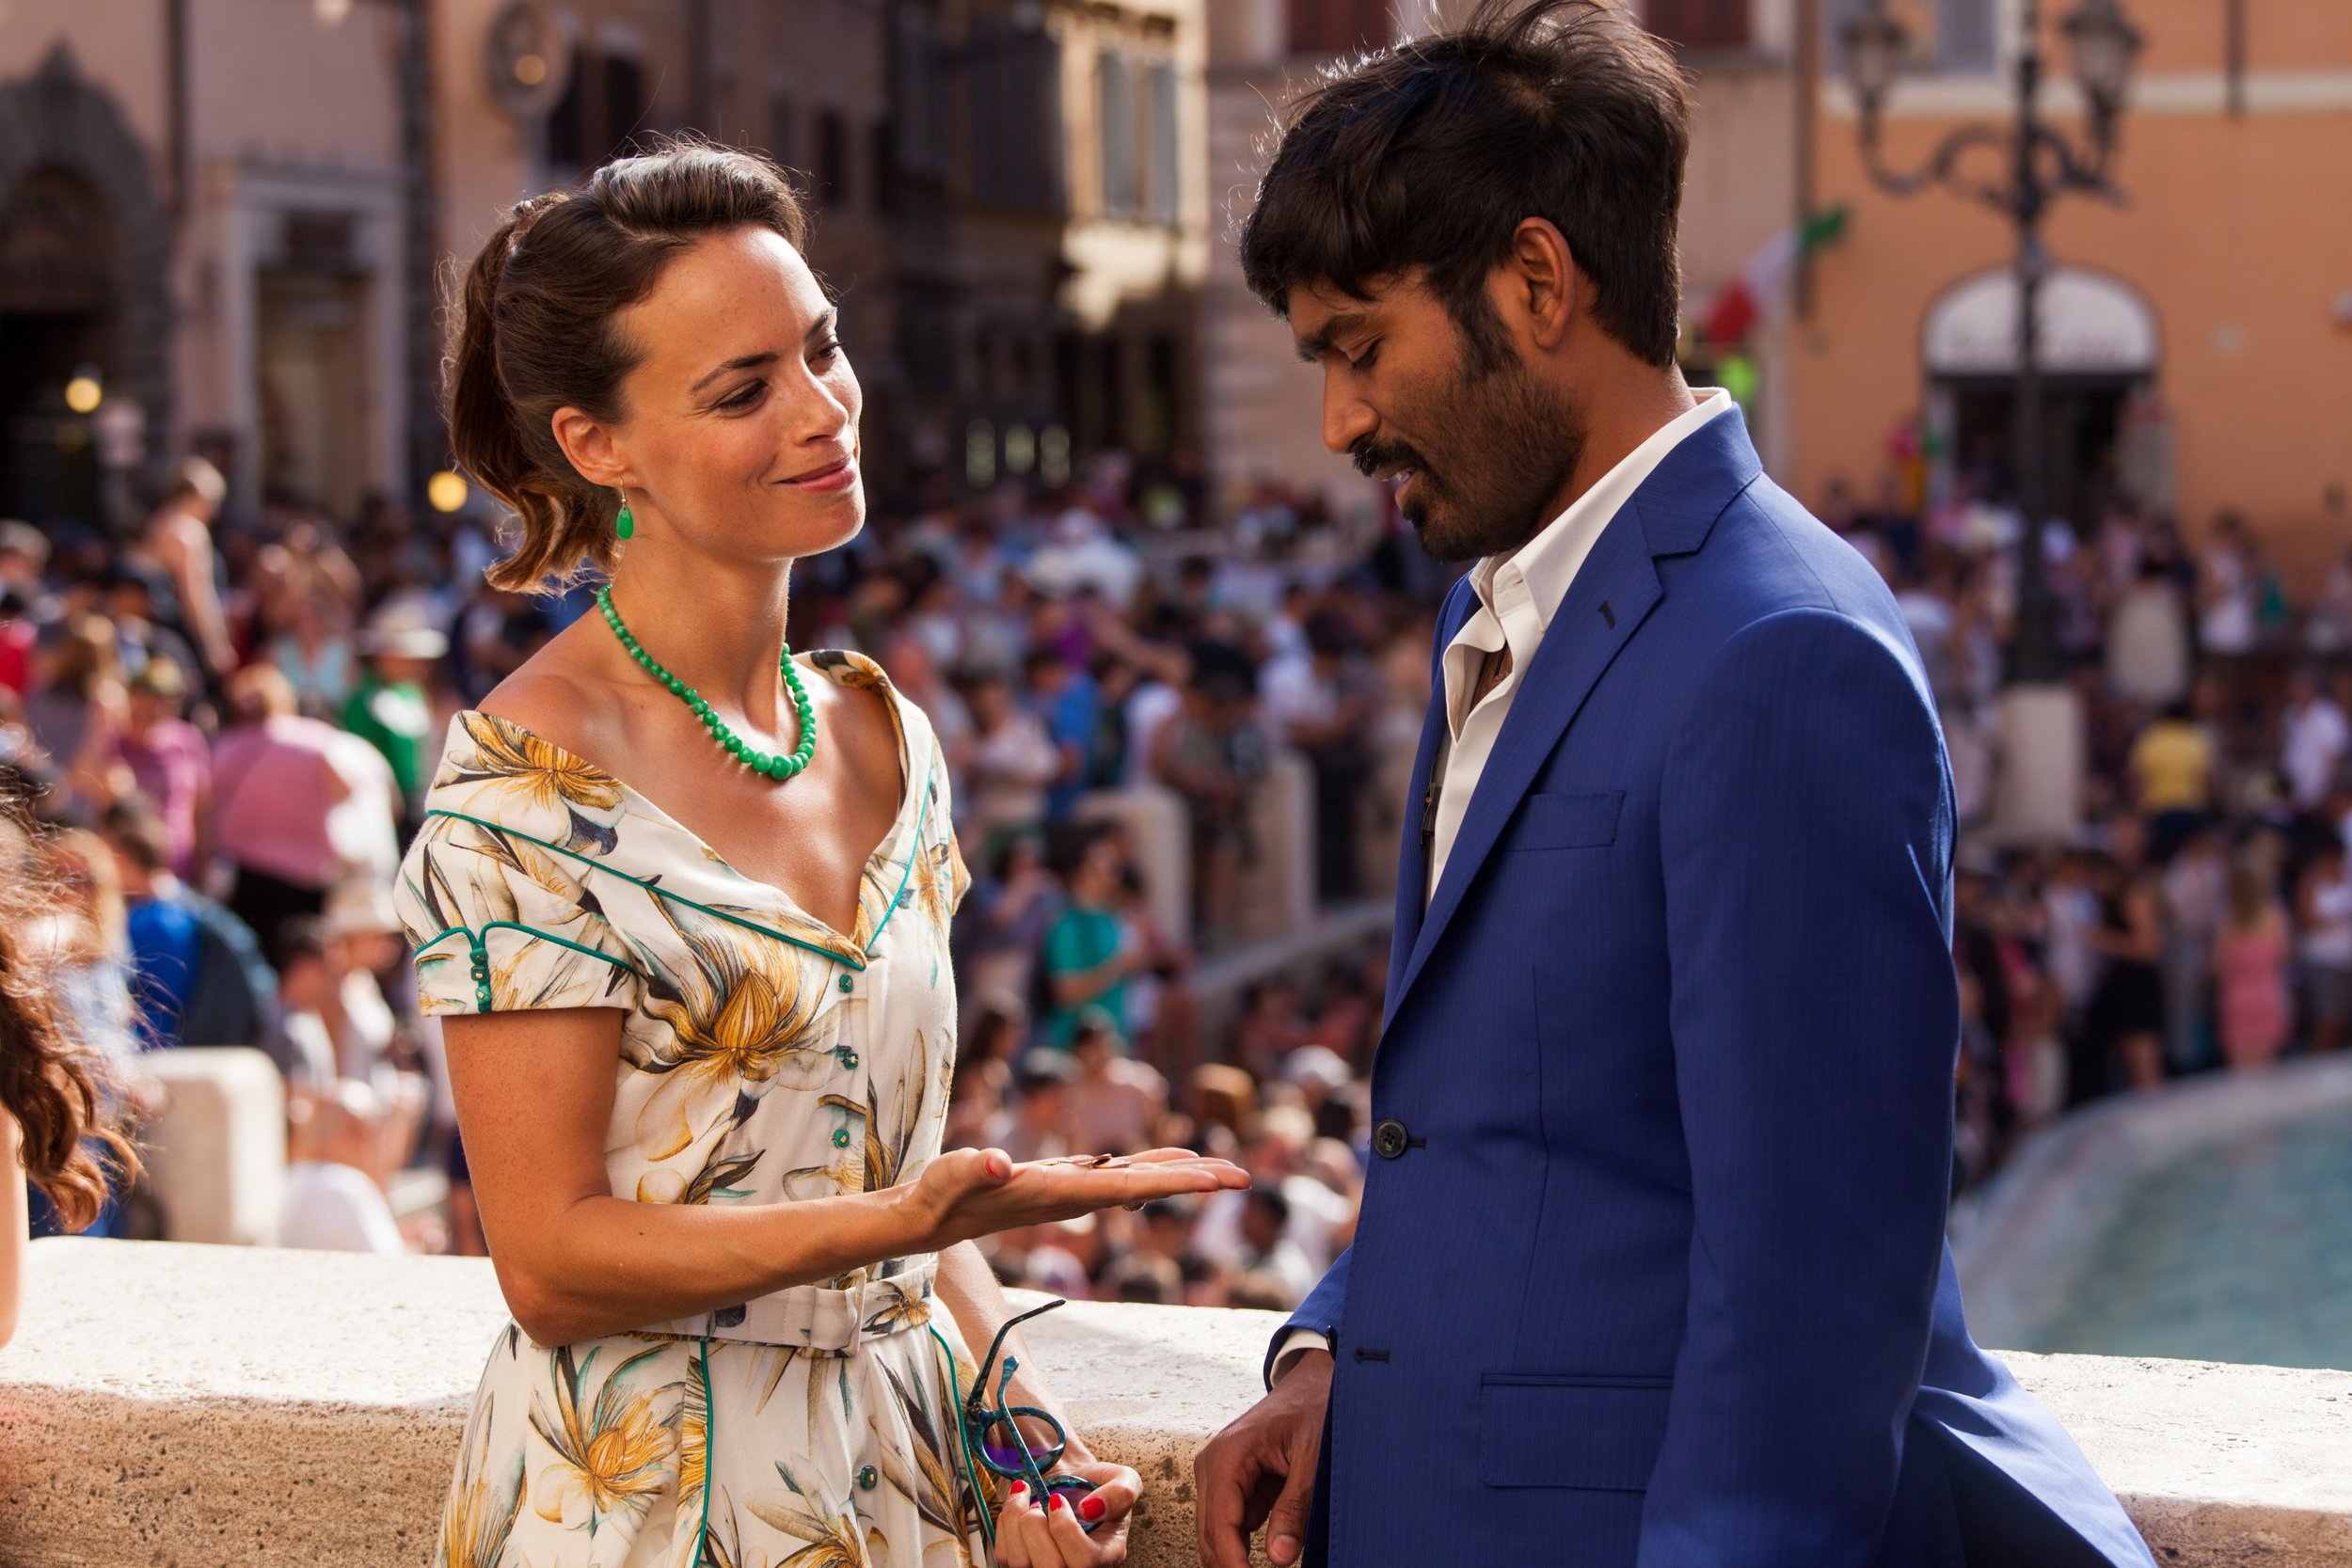 Aja (Dhanush) charms a movie star played by Berenice Bejo in The Extraordinary Journey of the Fakir